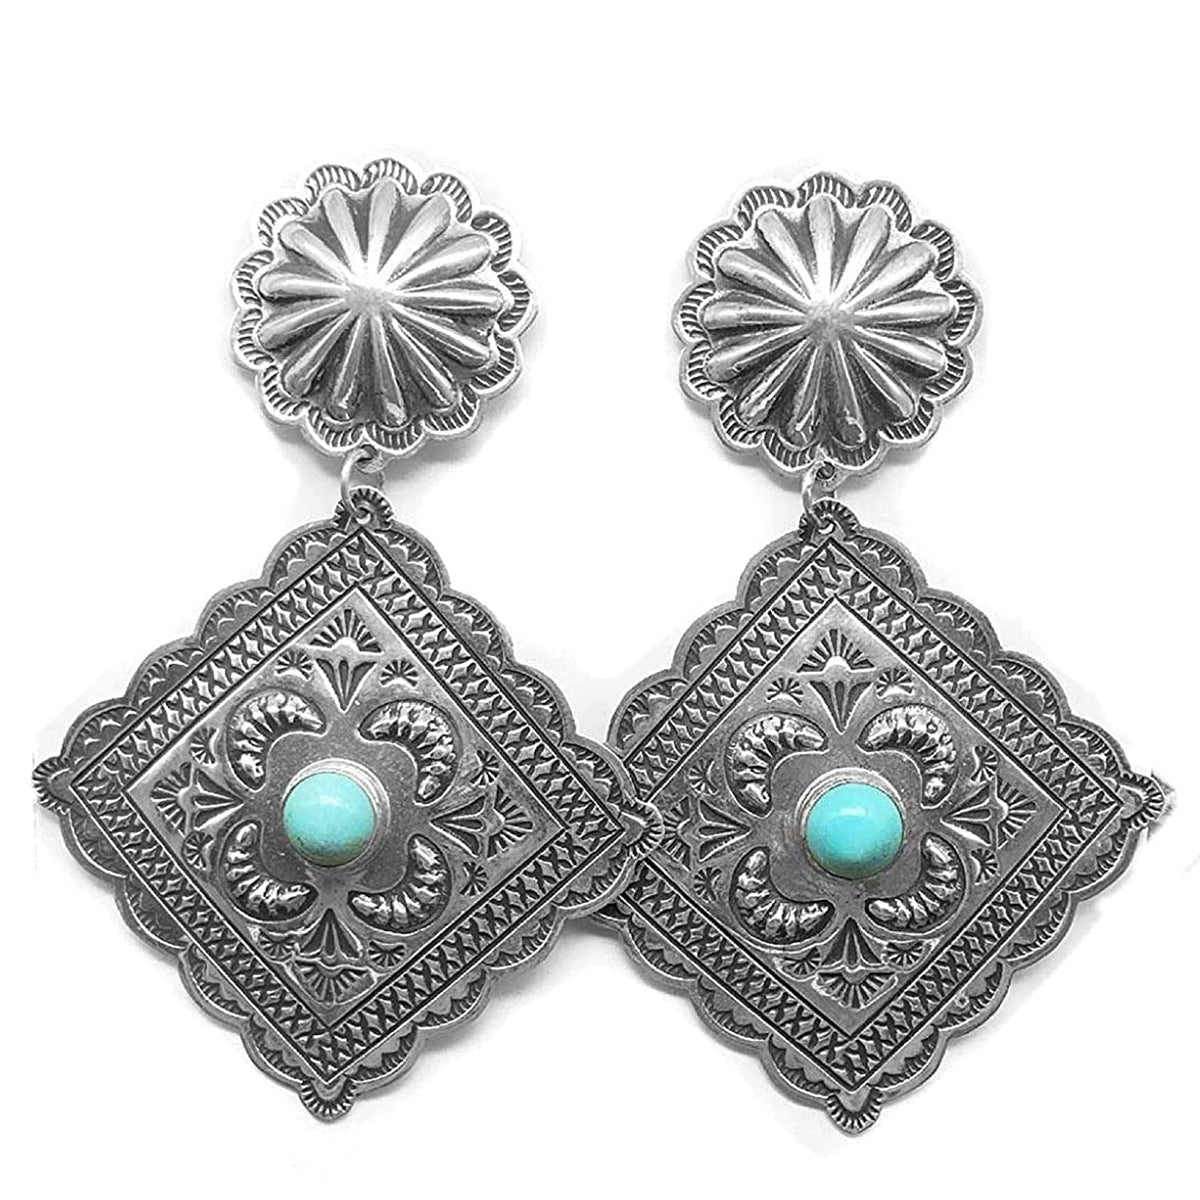 Genuine Sleeping Beauty Turquoise Statement Earrings, Sterling Silver, Authentic Navajo Native American USA Handmade, Artist Signed, Nickle Free, Southwest Vintage Style